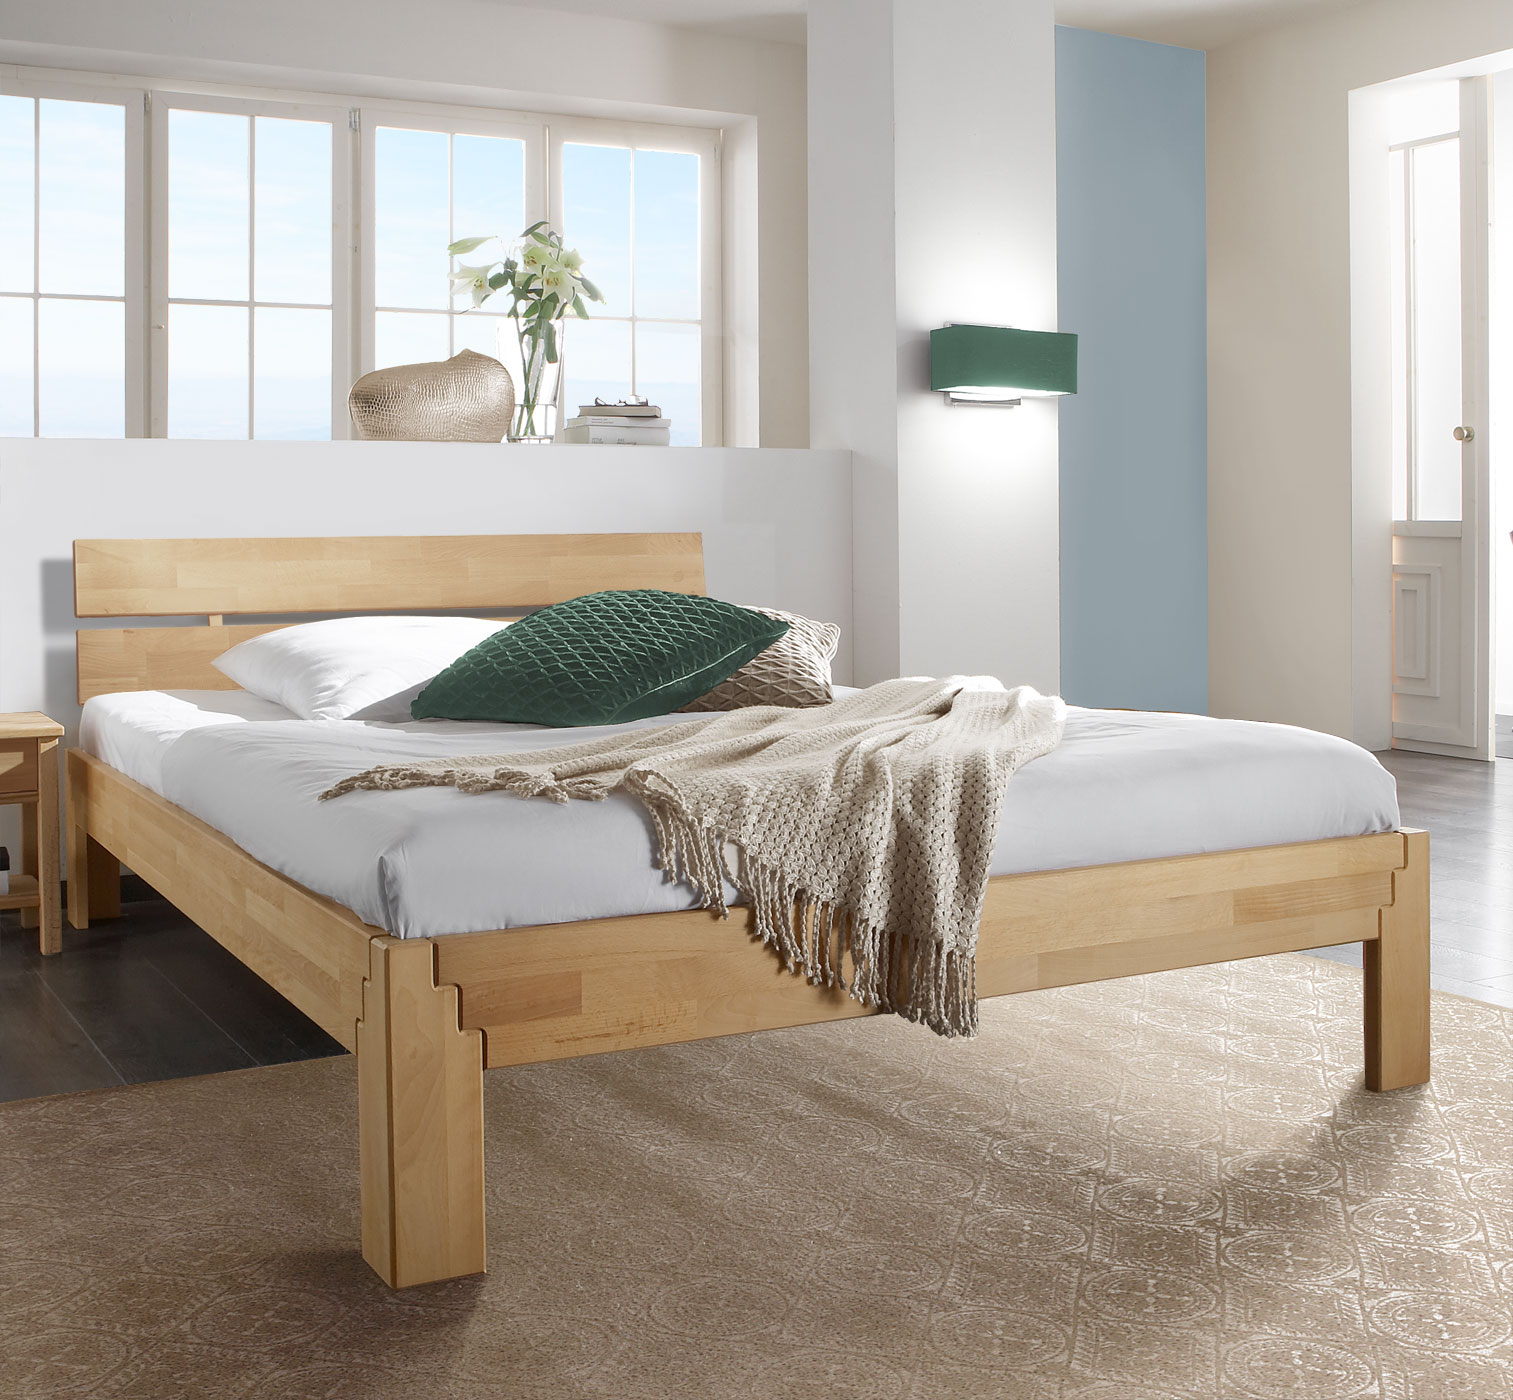 buche massivholz bett 160x200 biologisch ge lt aargau. Black Bedroom Furniture Sets. Home Design Ideas